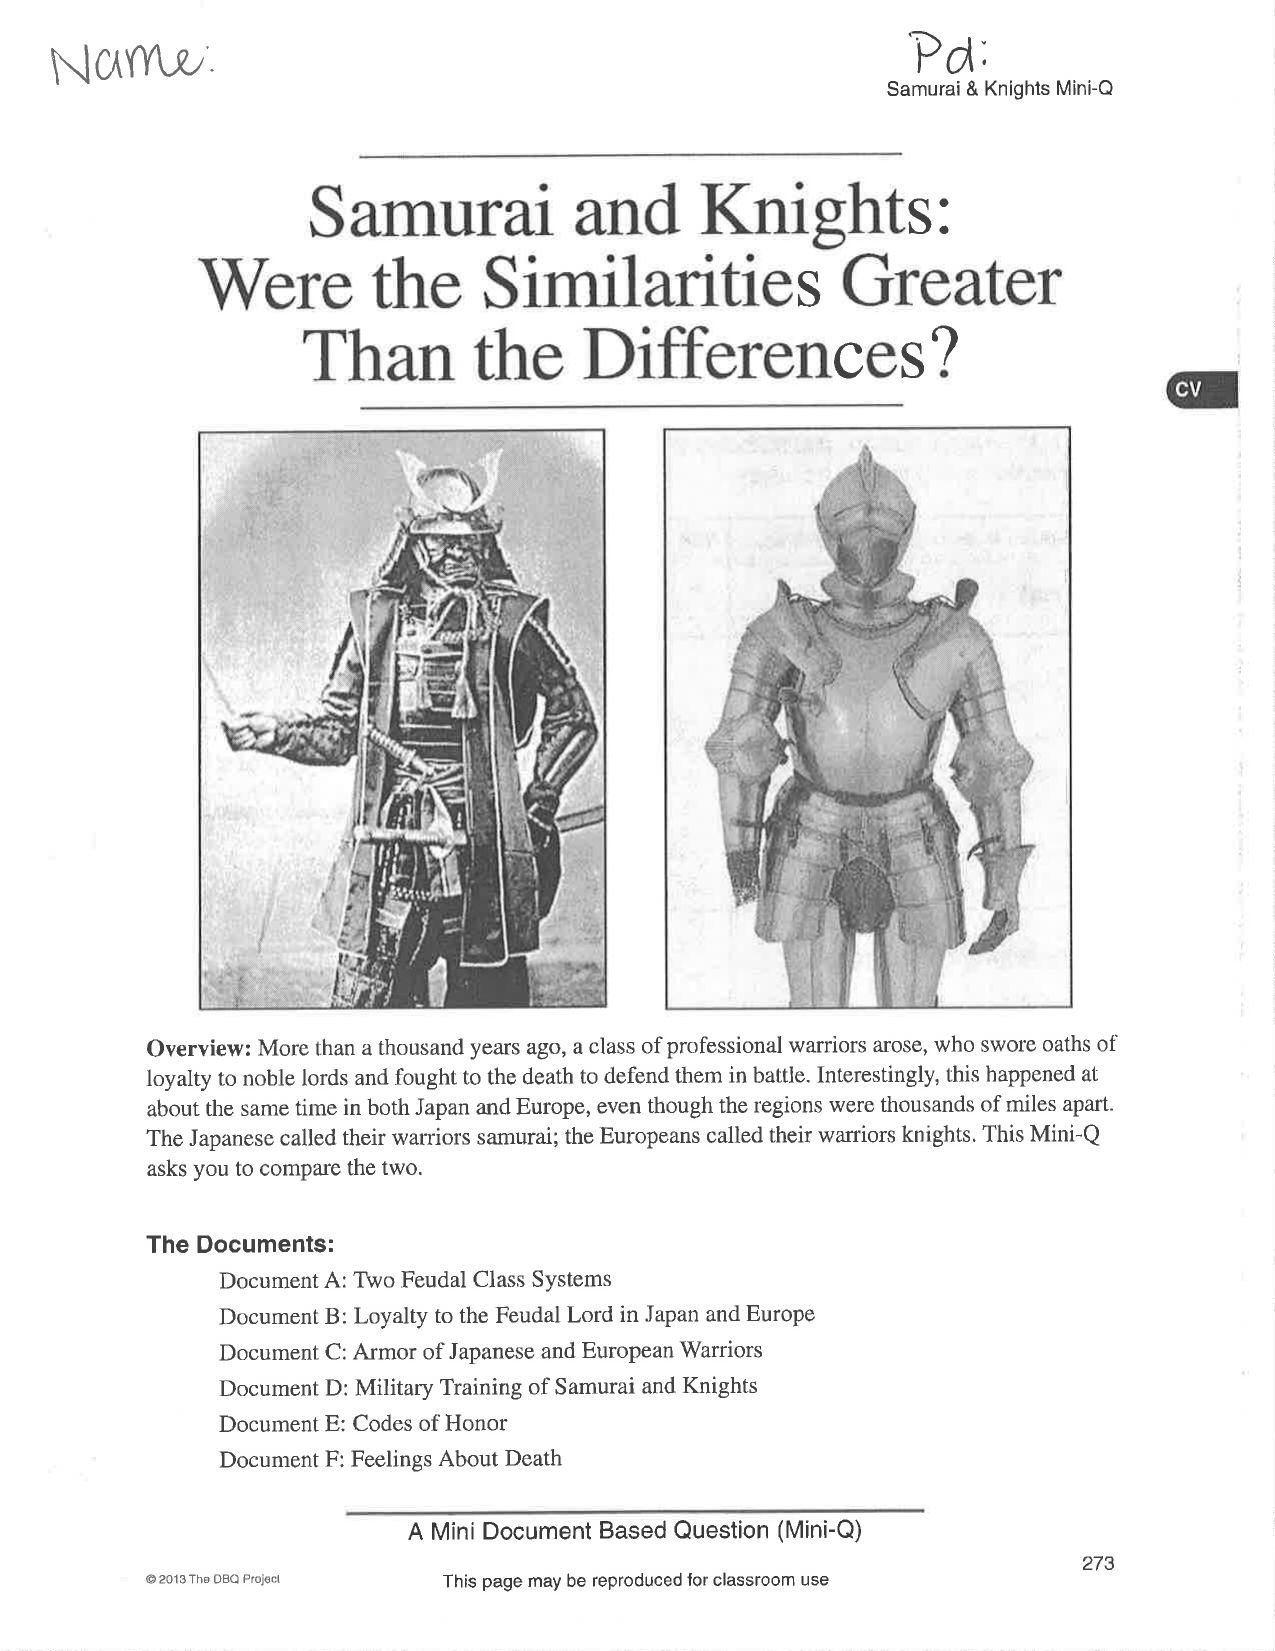 Samurai Knight DBQ Packet